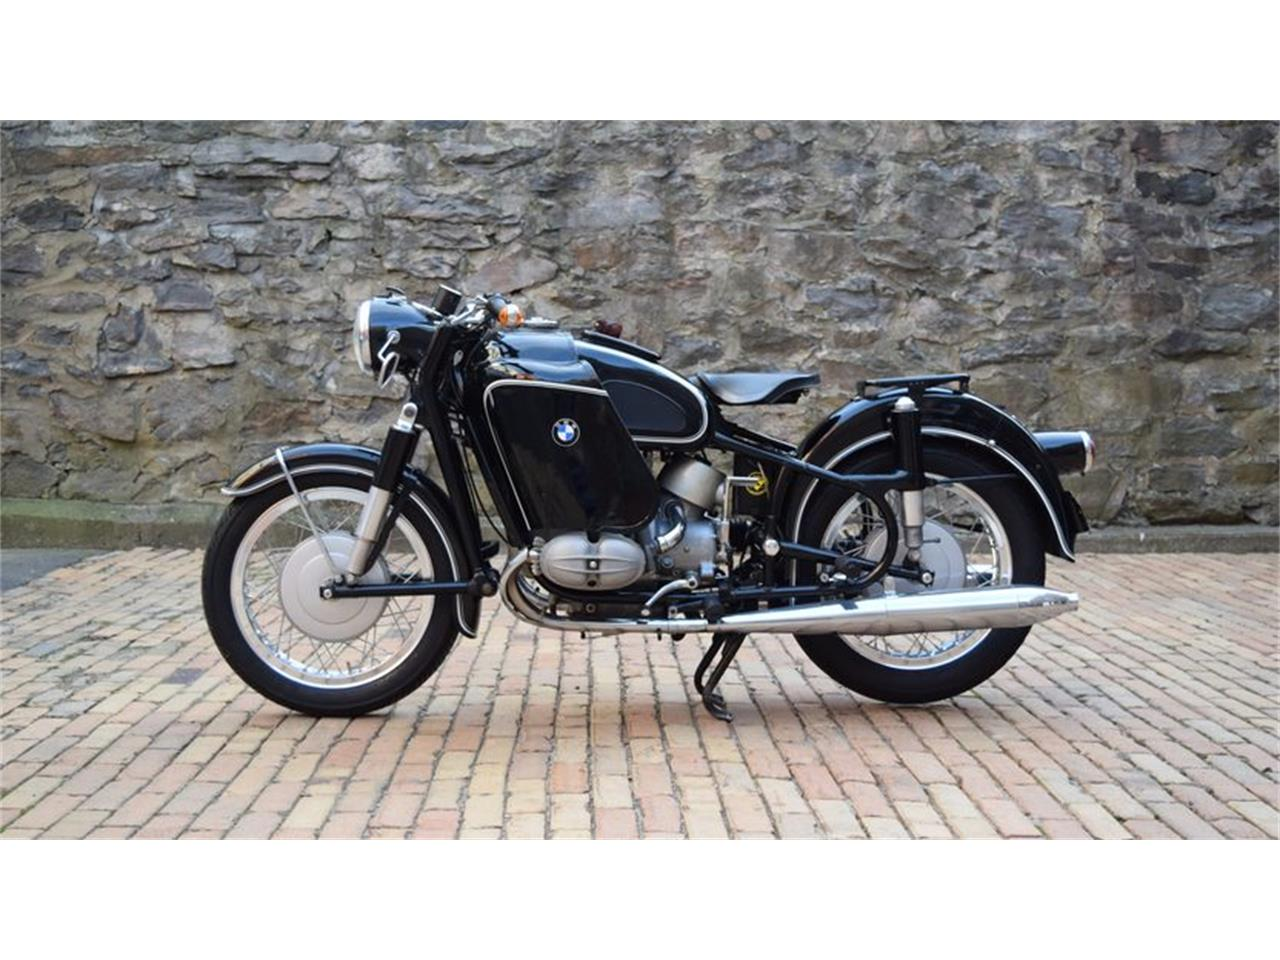 BMW Motorcycles Las Vegas >> 1964 Bmw Motorcycle For Sale Classiccars Com Cc 929688